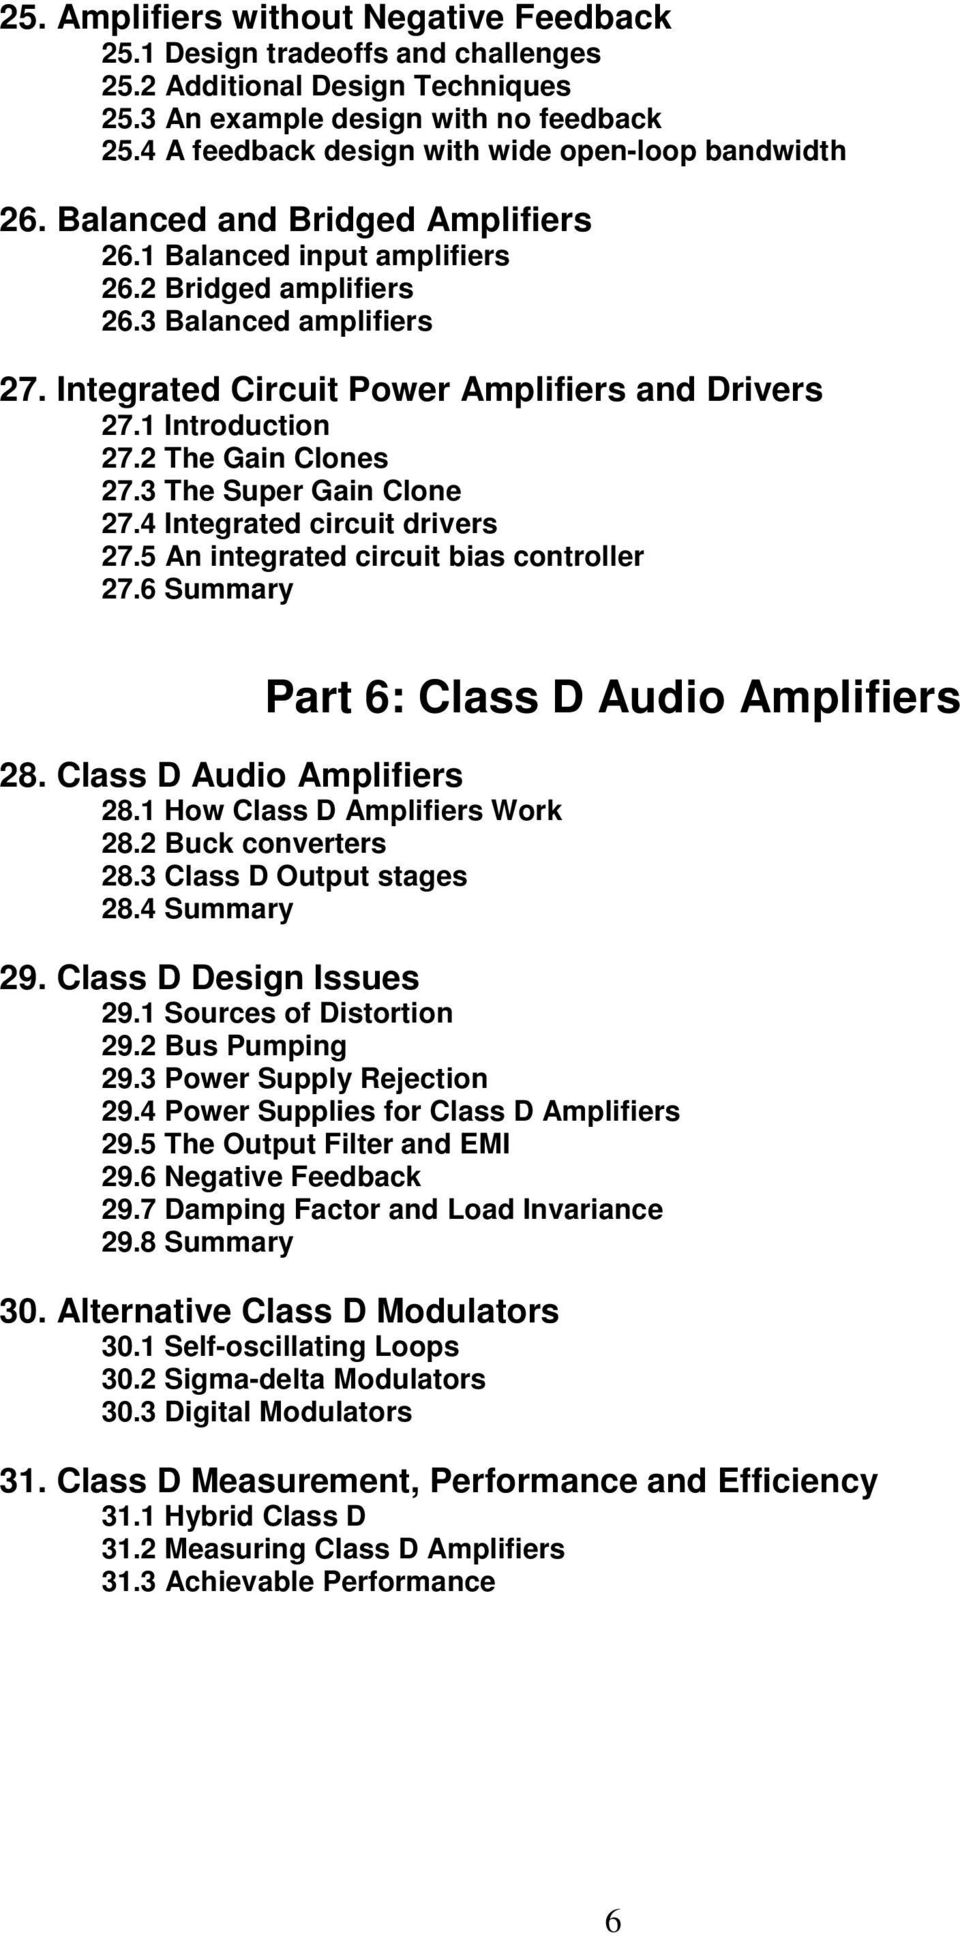 Integrated Circuit Power Amplifiers and Drivers 27.1 Introduction 27.2 The Gain Clones 27.3 The Super Gain Clone 27.4 Integrated circuit drivers 27.5 An integrated circuit bias controller 27.